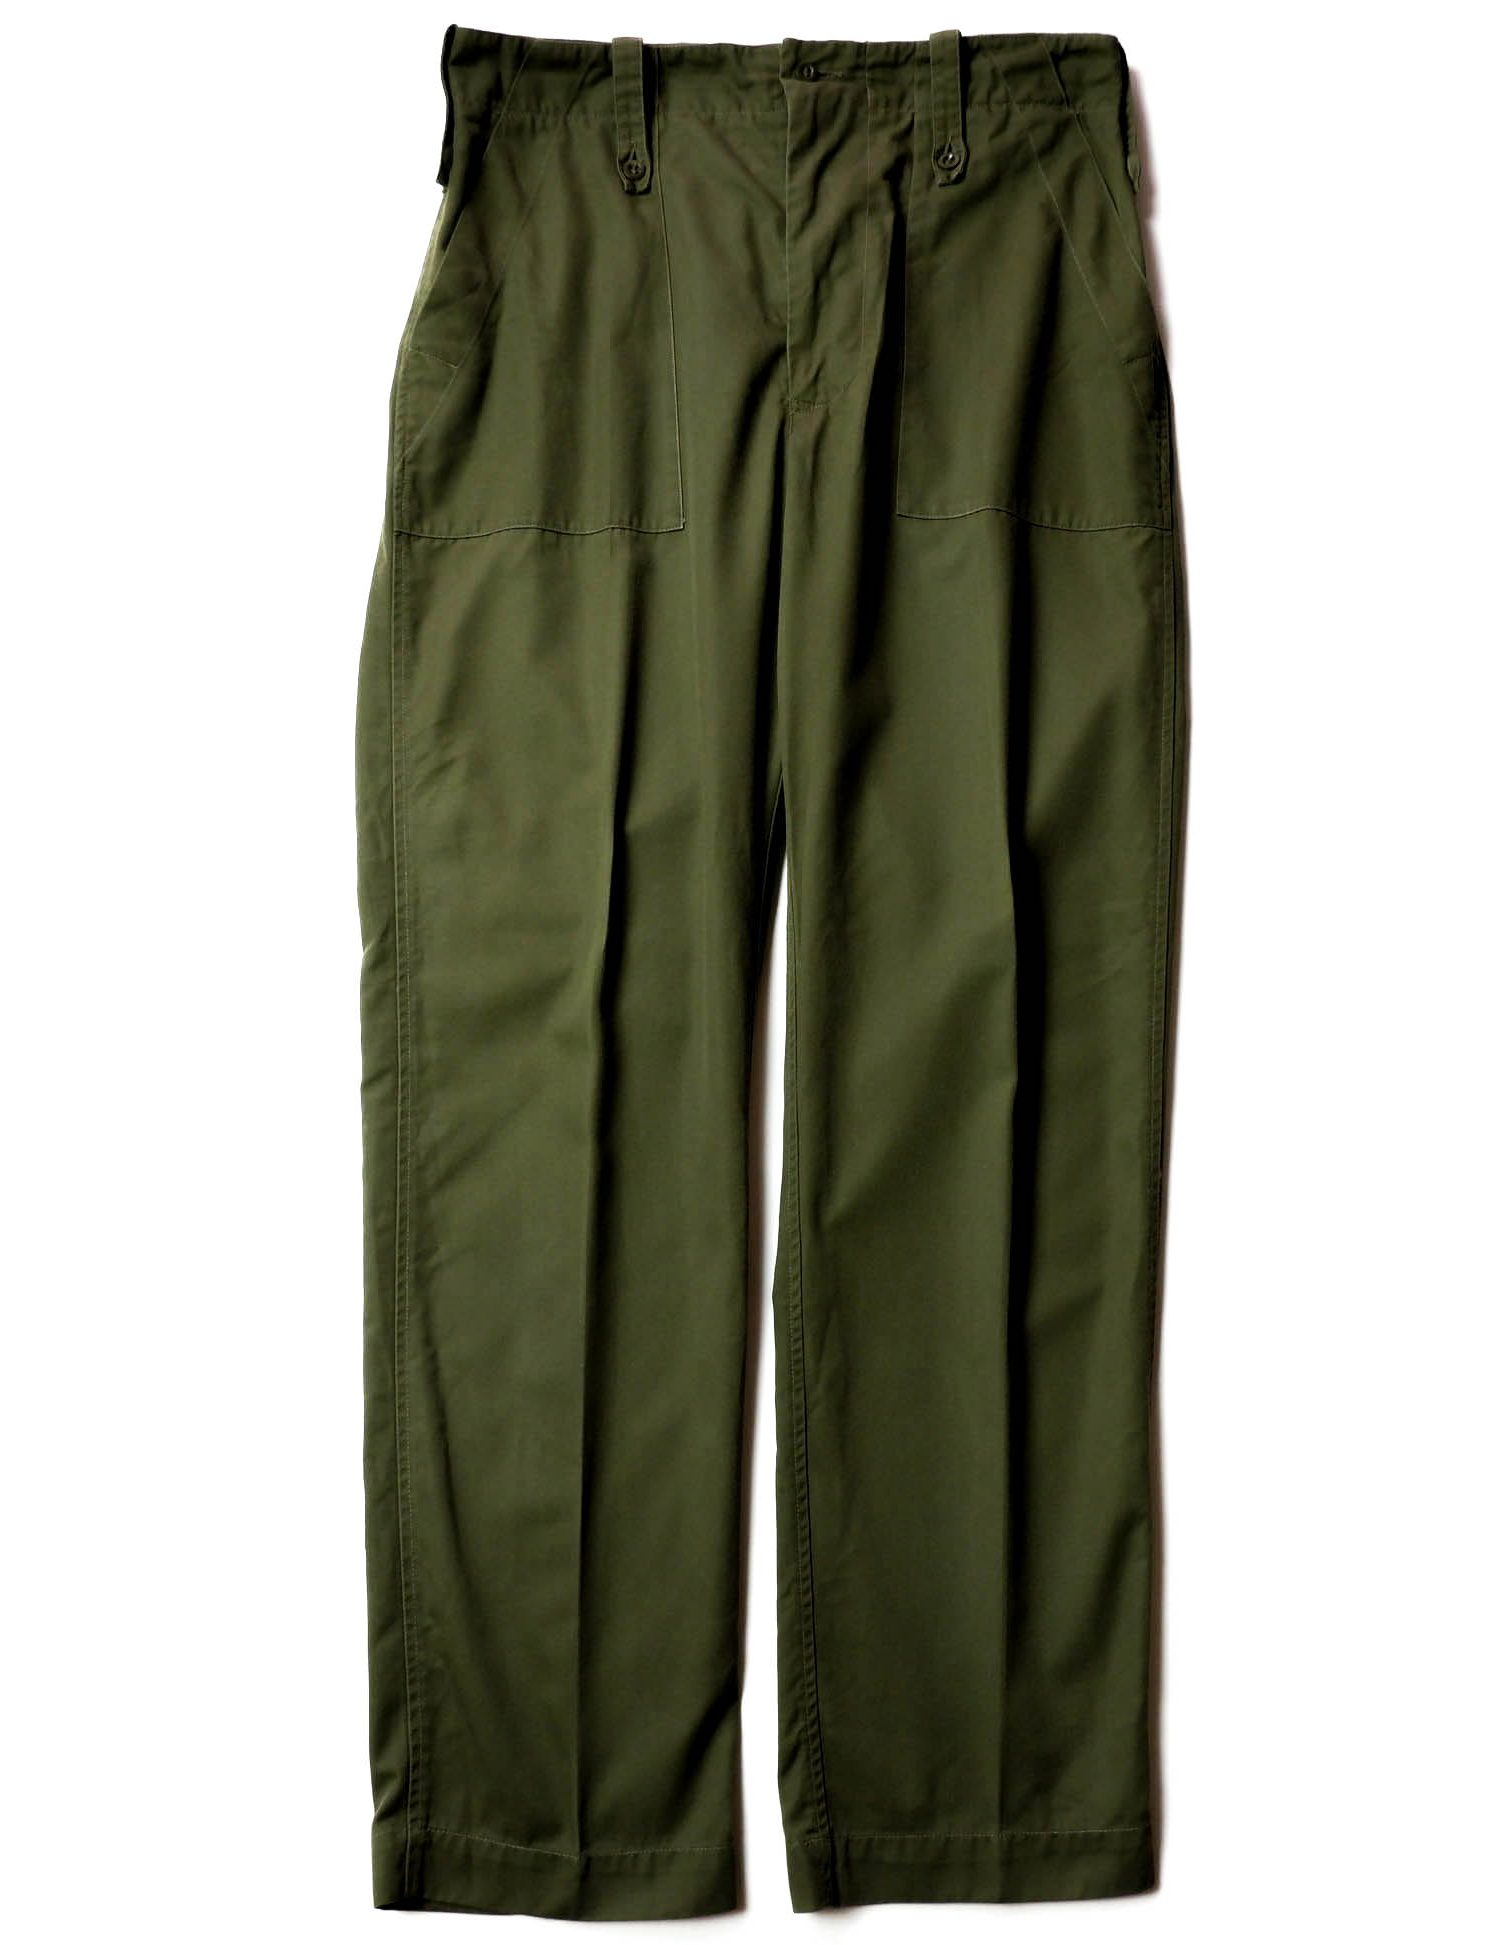 BRITISH ARMY LIGHTWEIGHT FATIGUE PANTS